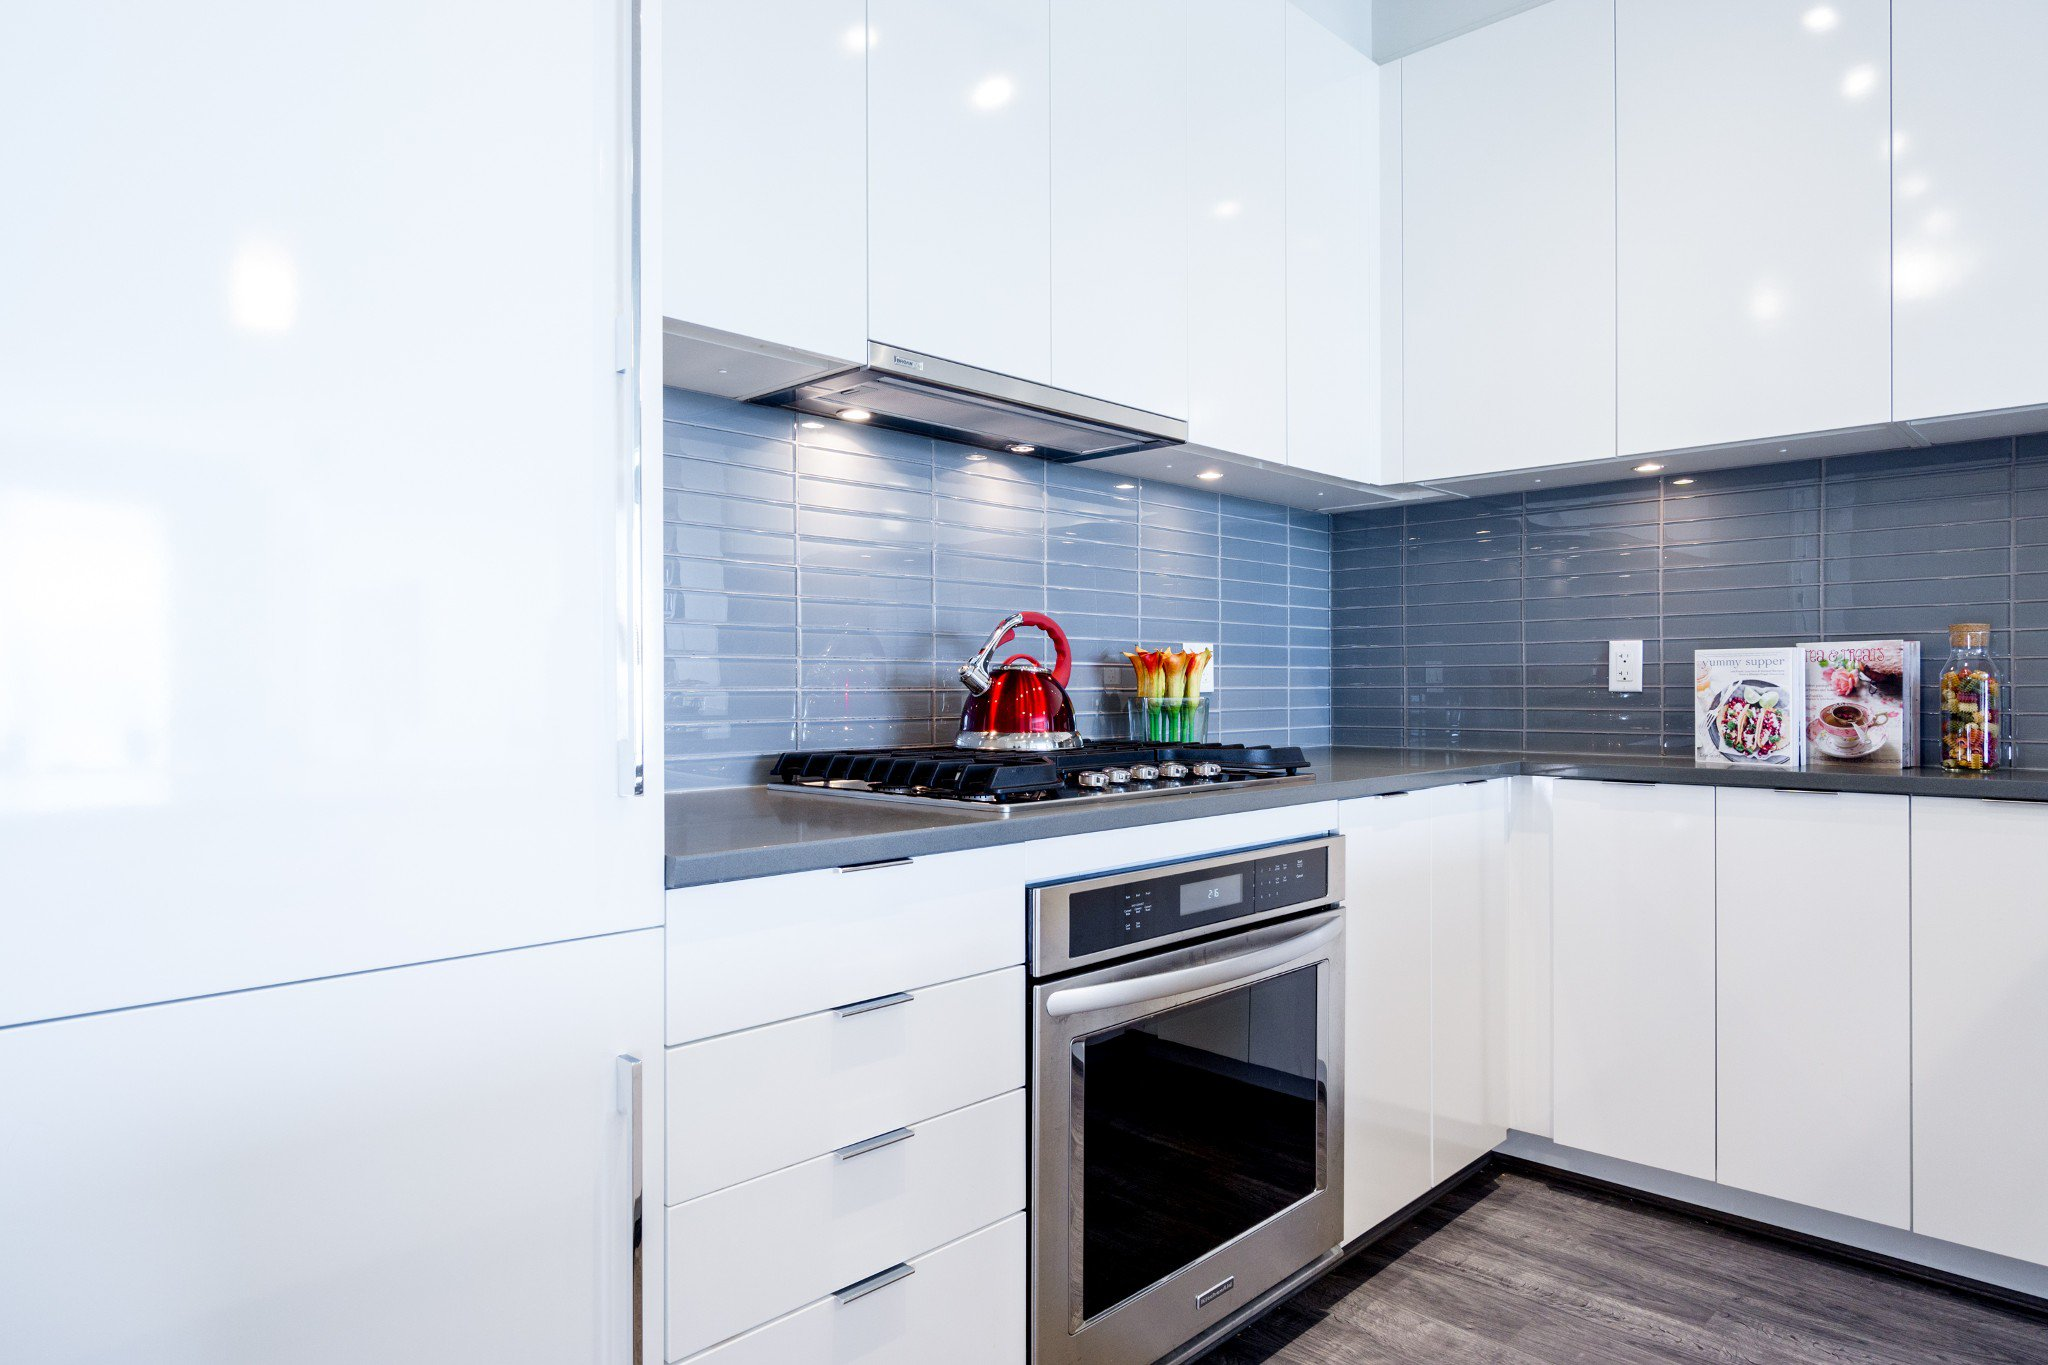 """Photo 8: Photos: 402 9311 ALEXANDRA Road in Richmond: West Cambie Condo for sale in """"ALEXANDRA COURT"""" : MLS®# R2266613"""